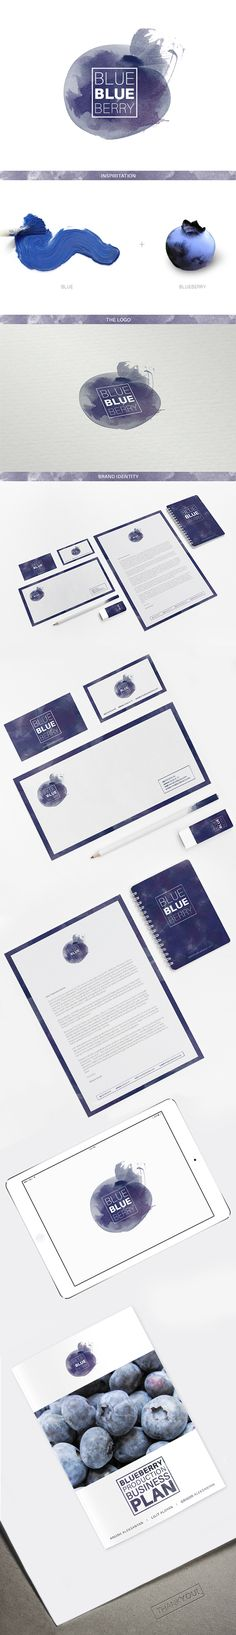 BlueBlueBerry / identity / branding / logo / stationary / fruit / restaurant…